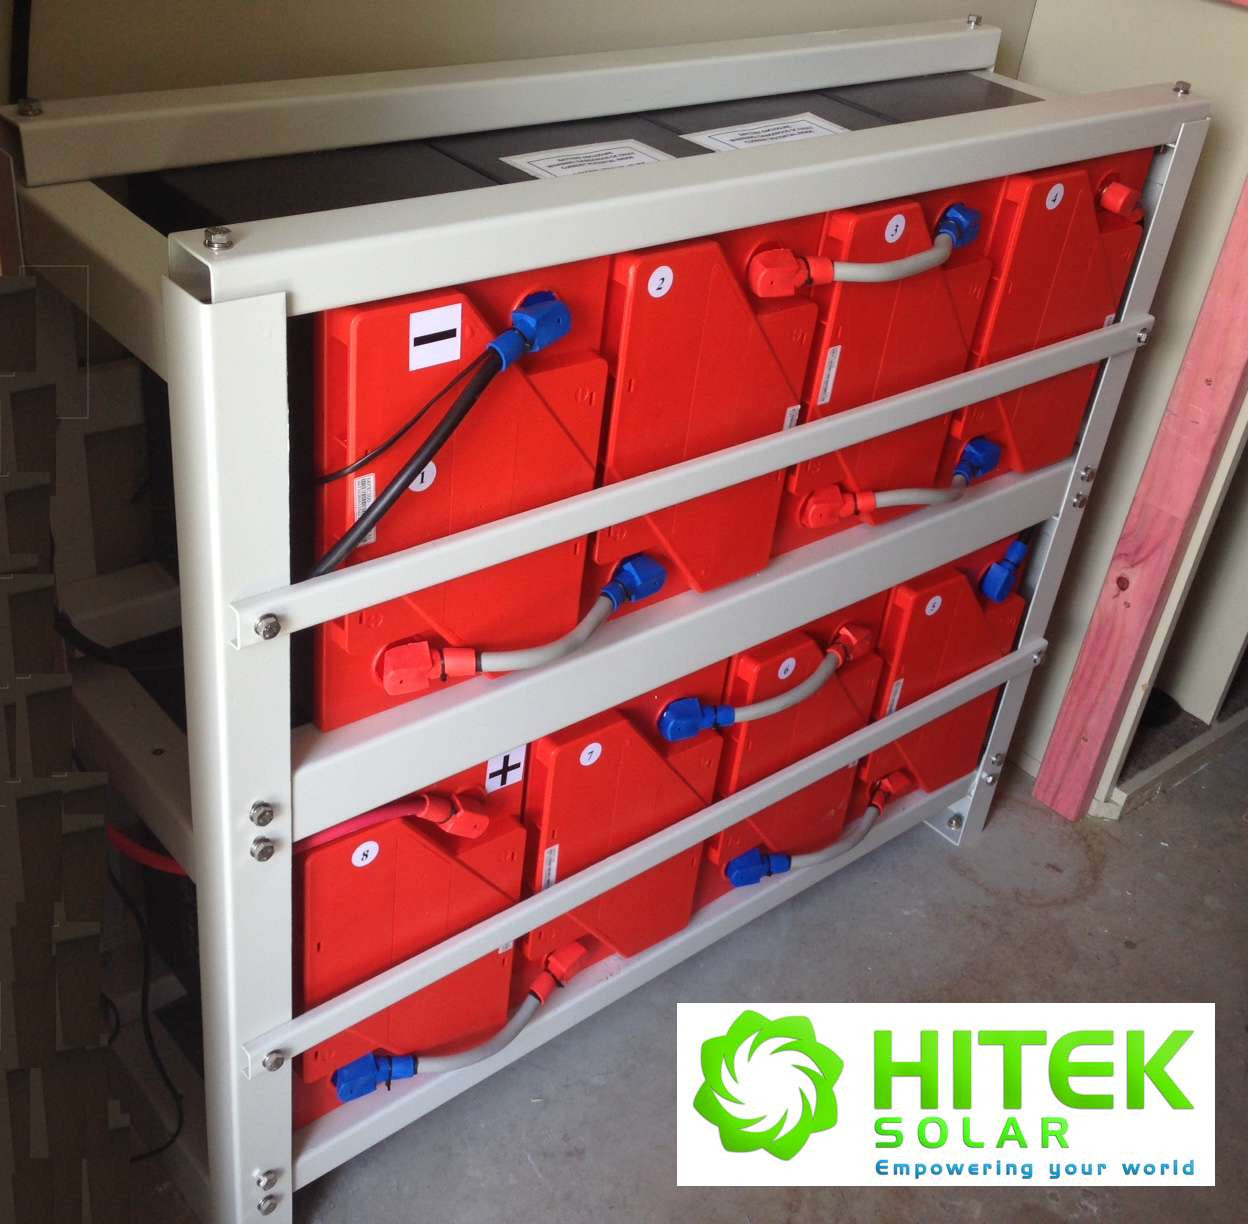 14.4kWh Retrofit Solar Hybrid Storage Add-On System (New Years Promo Special only 1 left) !!